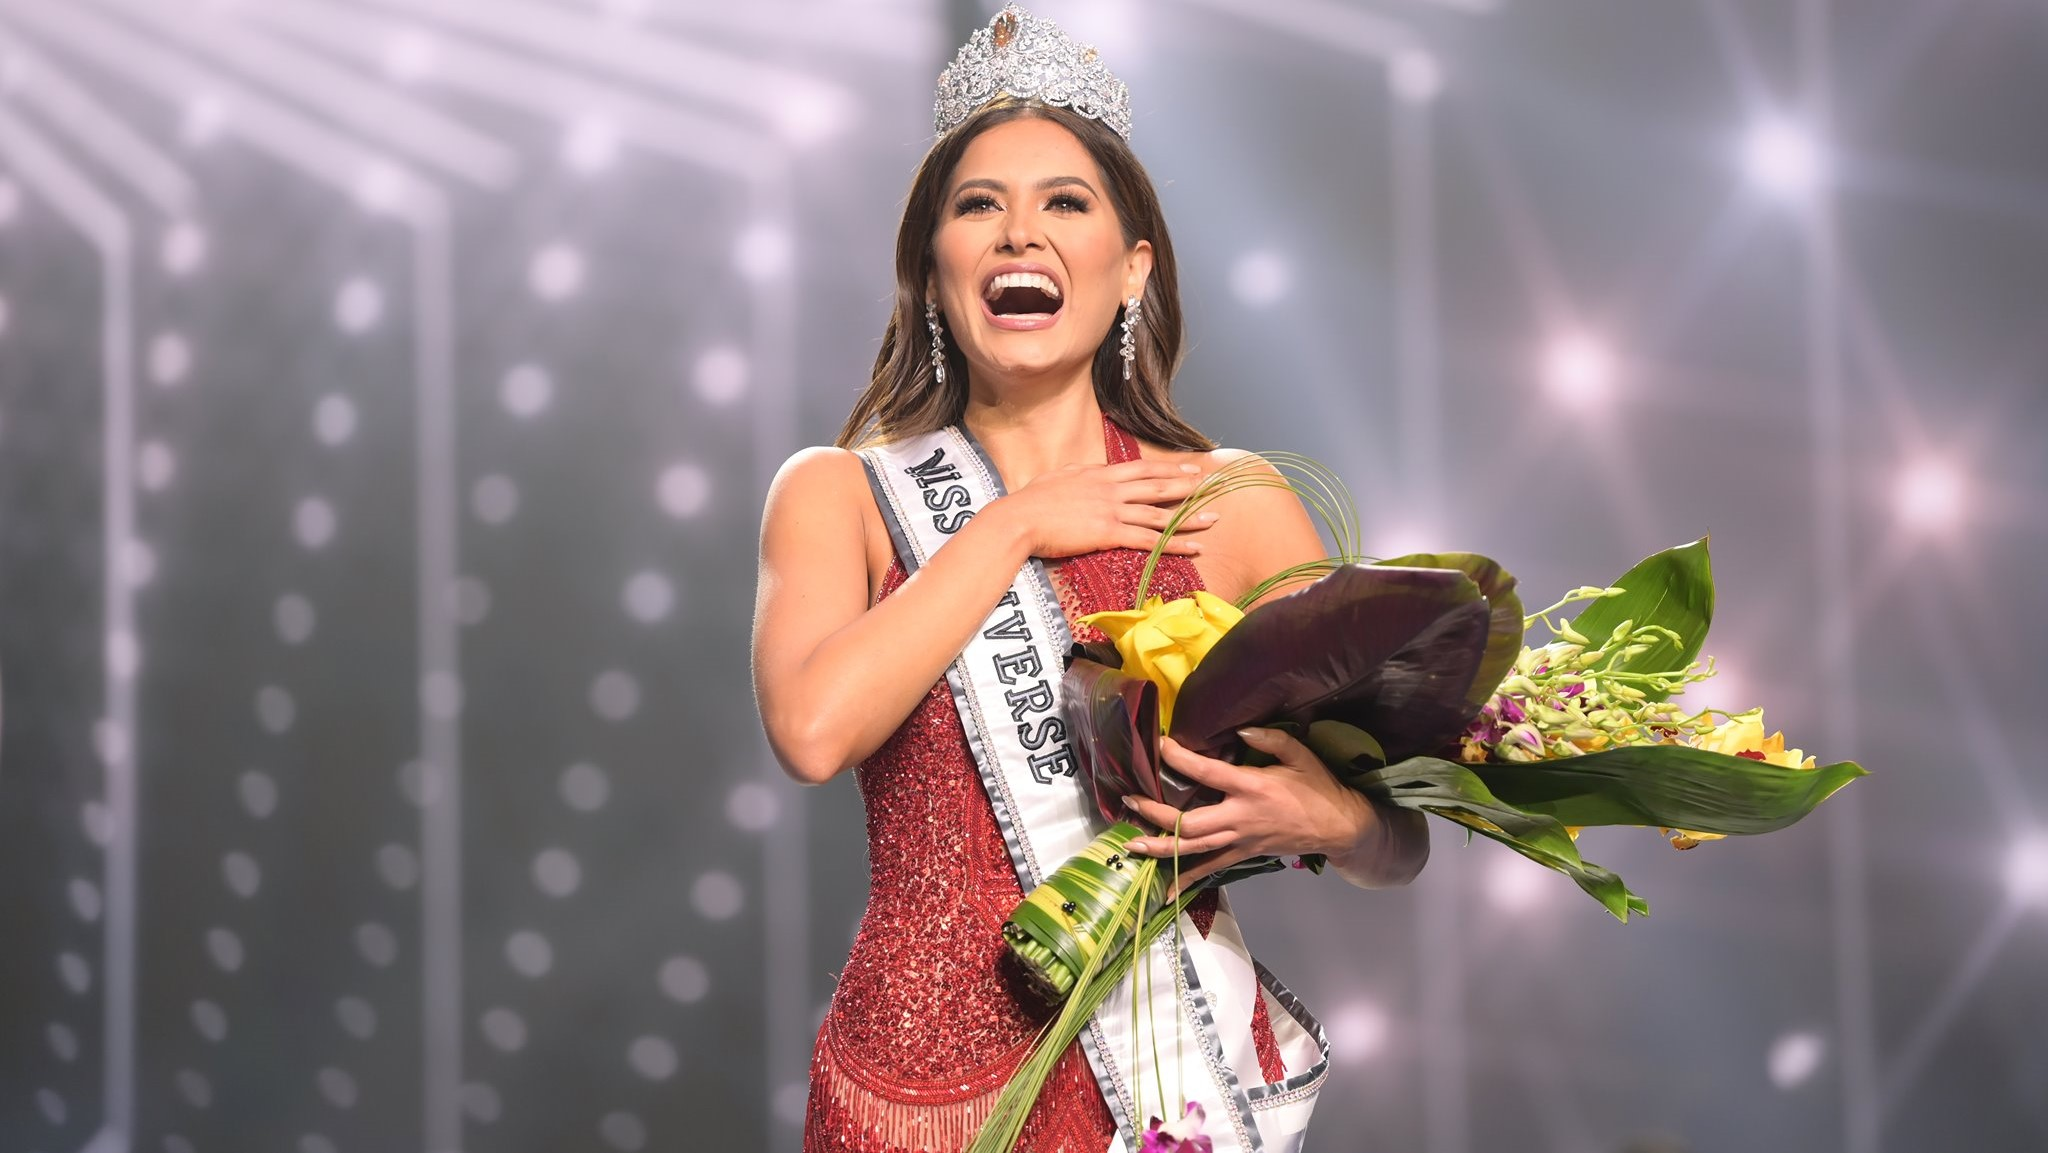 Andrea Meza of Mexico crowned 69th Miss Universe   Loop Caribbean News